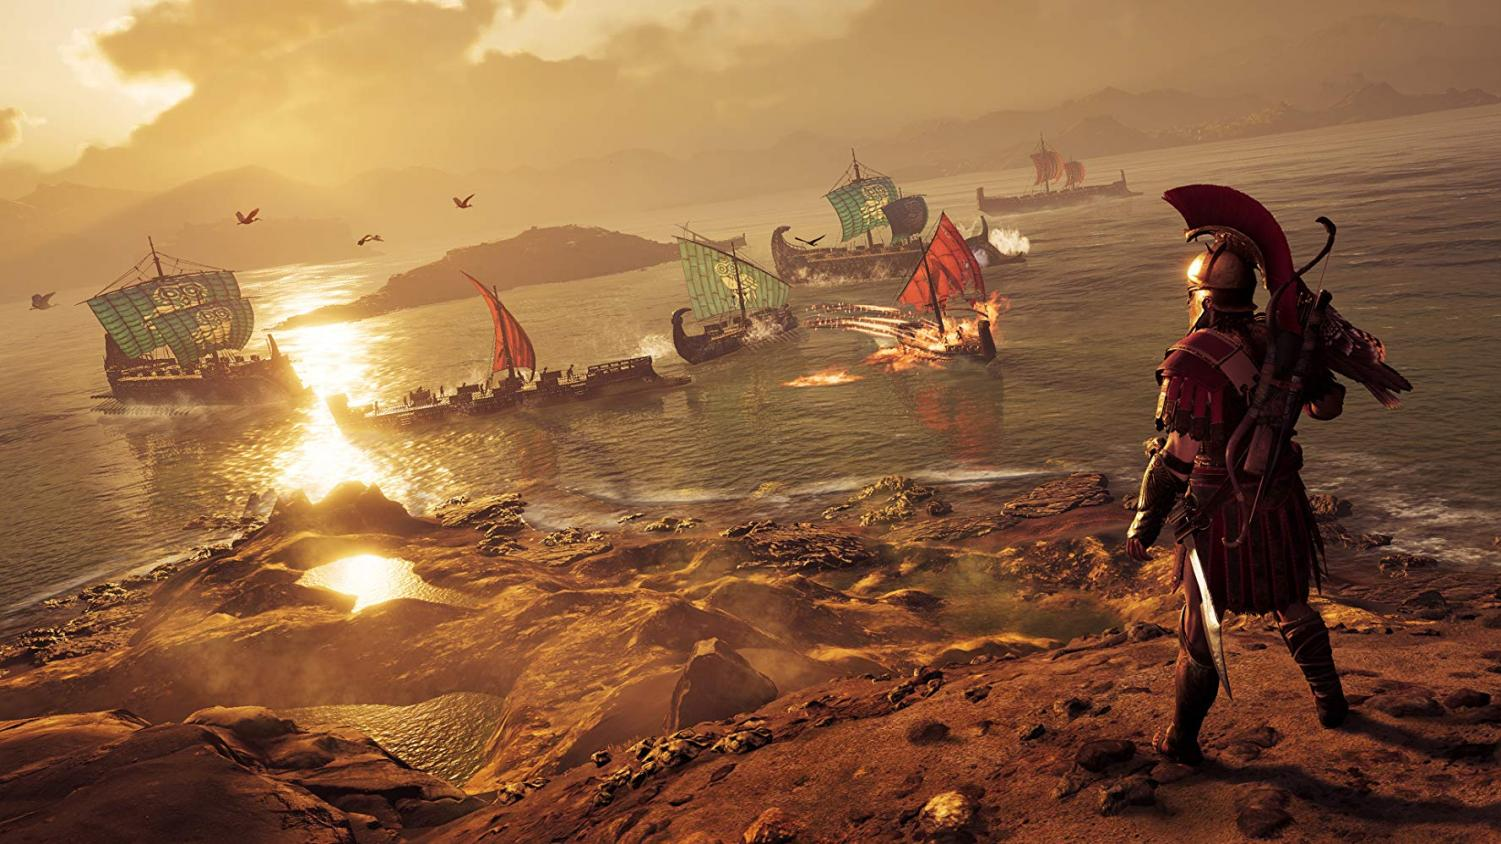 Alexios overlooks a naval battle. Image from imdb.com